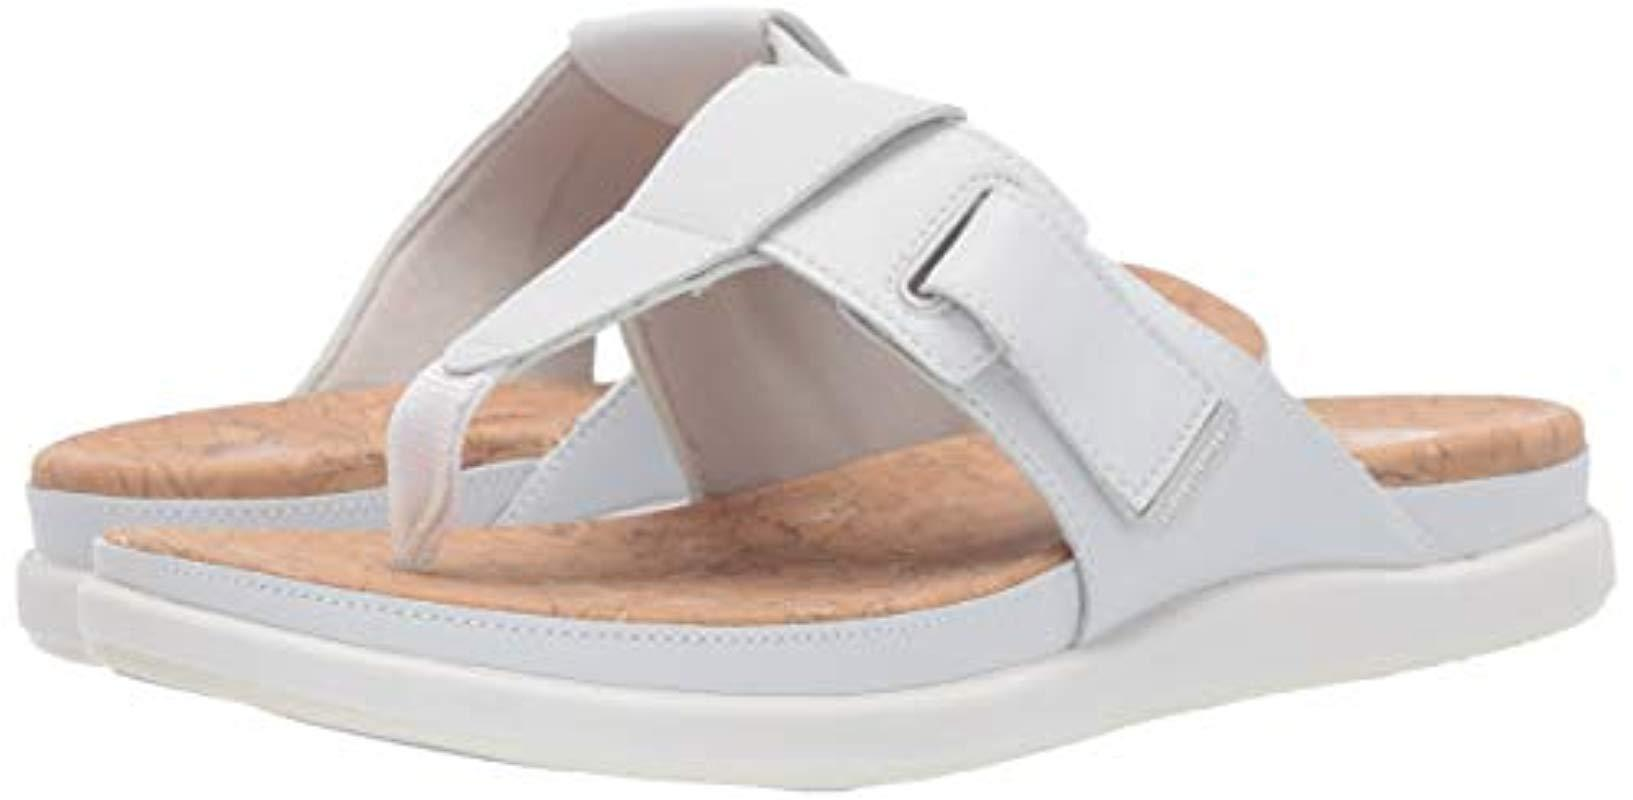 6c17e7935 Clarks Step June Reef Sandal in White - Save 19% - Lyst